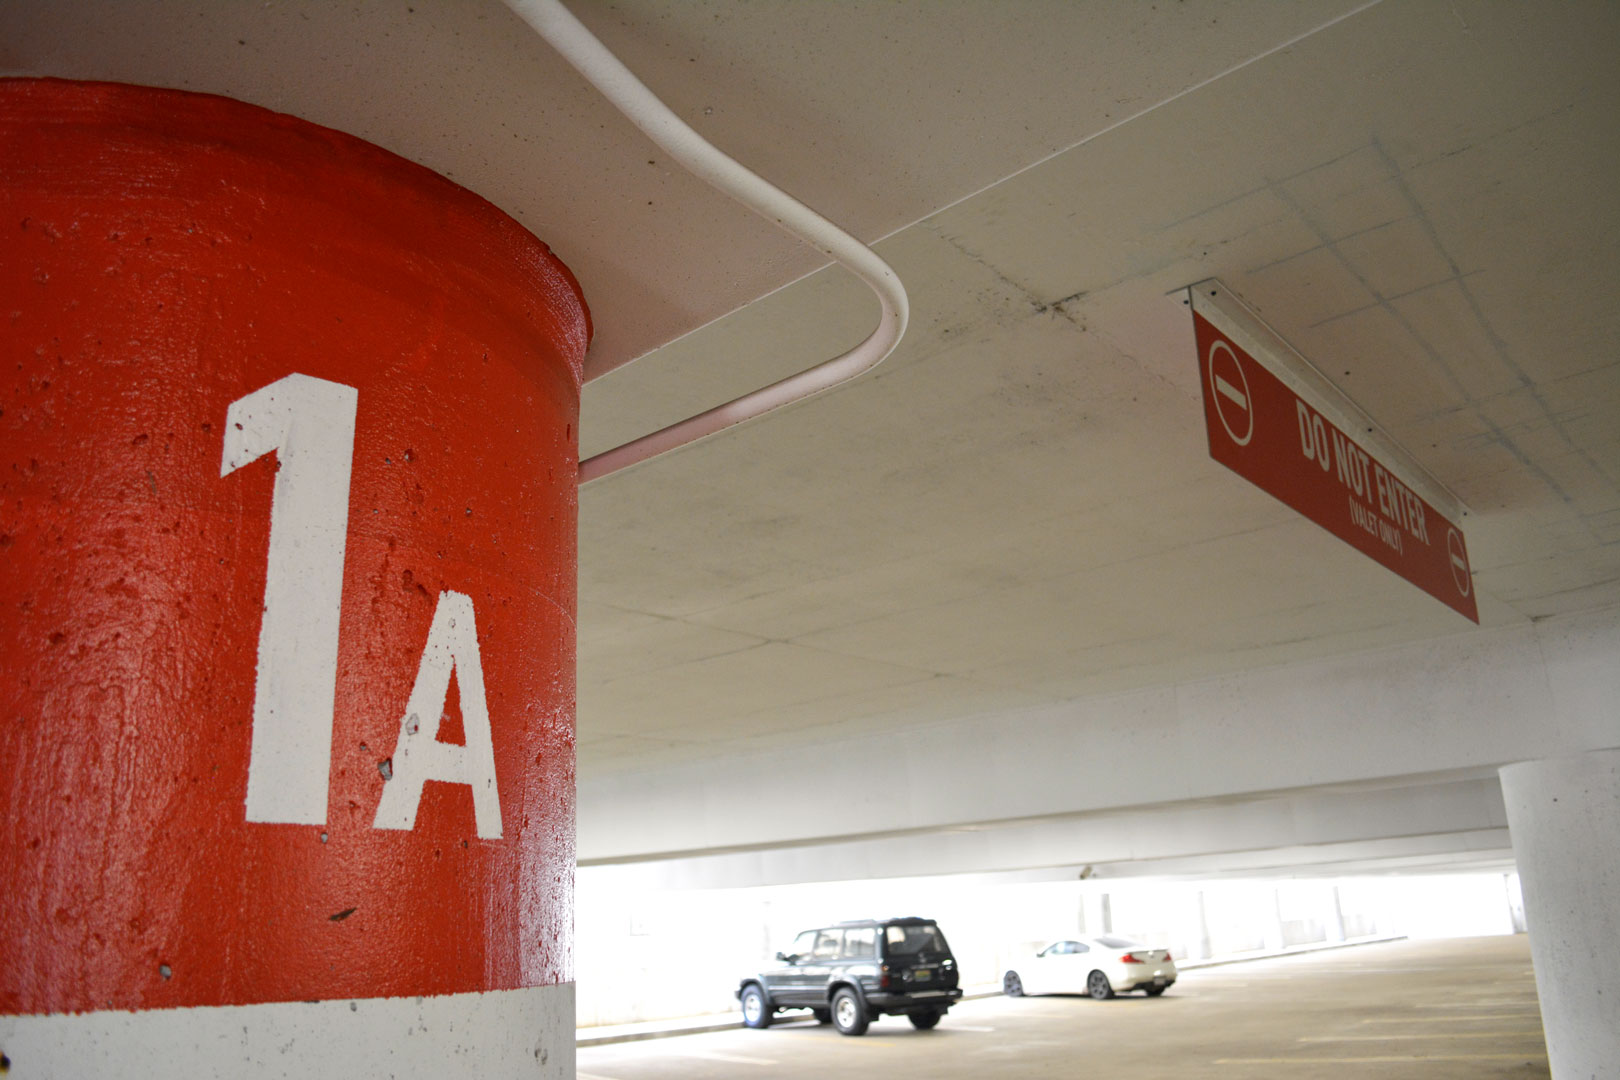 Painted column ID and overhead traffic control signage in the 22nd street BJCC parking deck